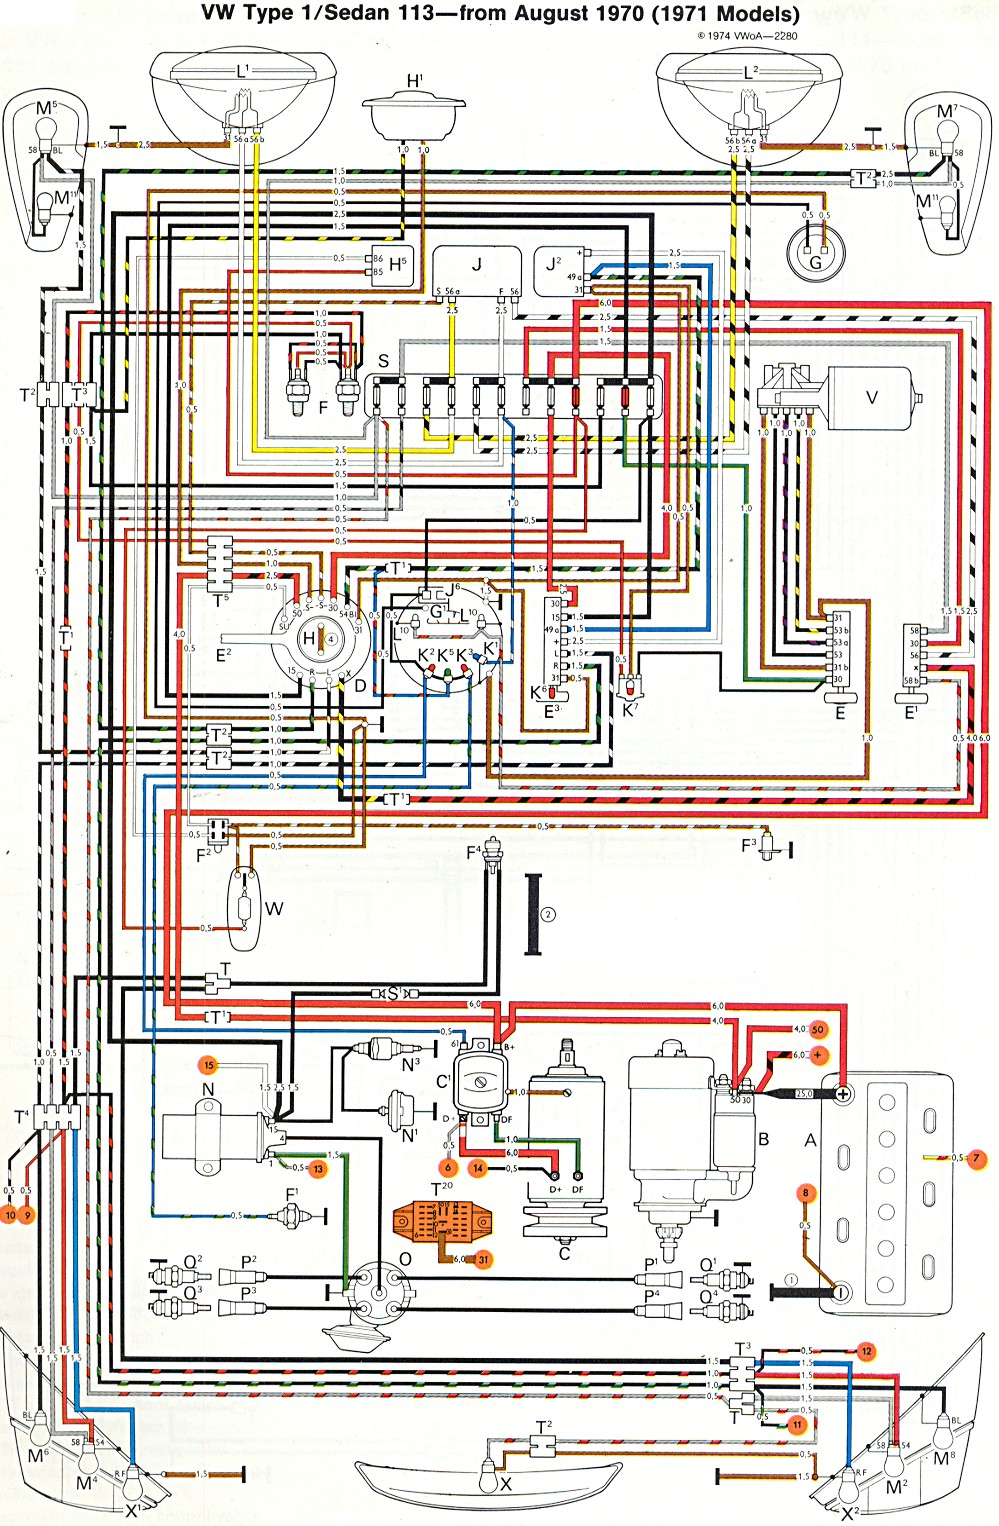 vw wiring diagrams free thesamba.com :: type 1 wiring diagrams vw wiring diagrams cabrio 2002 #14